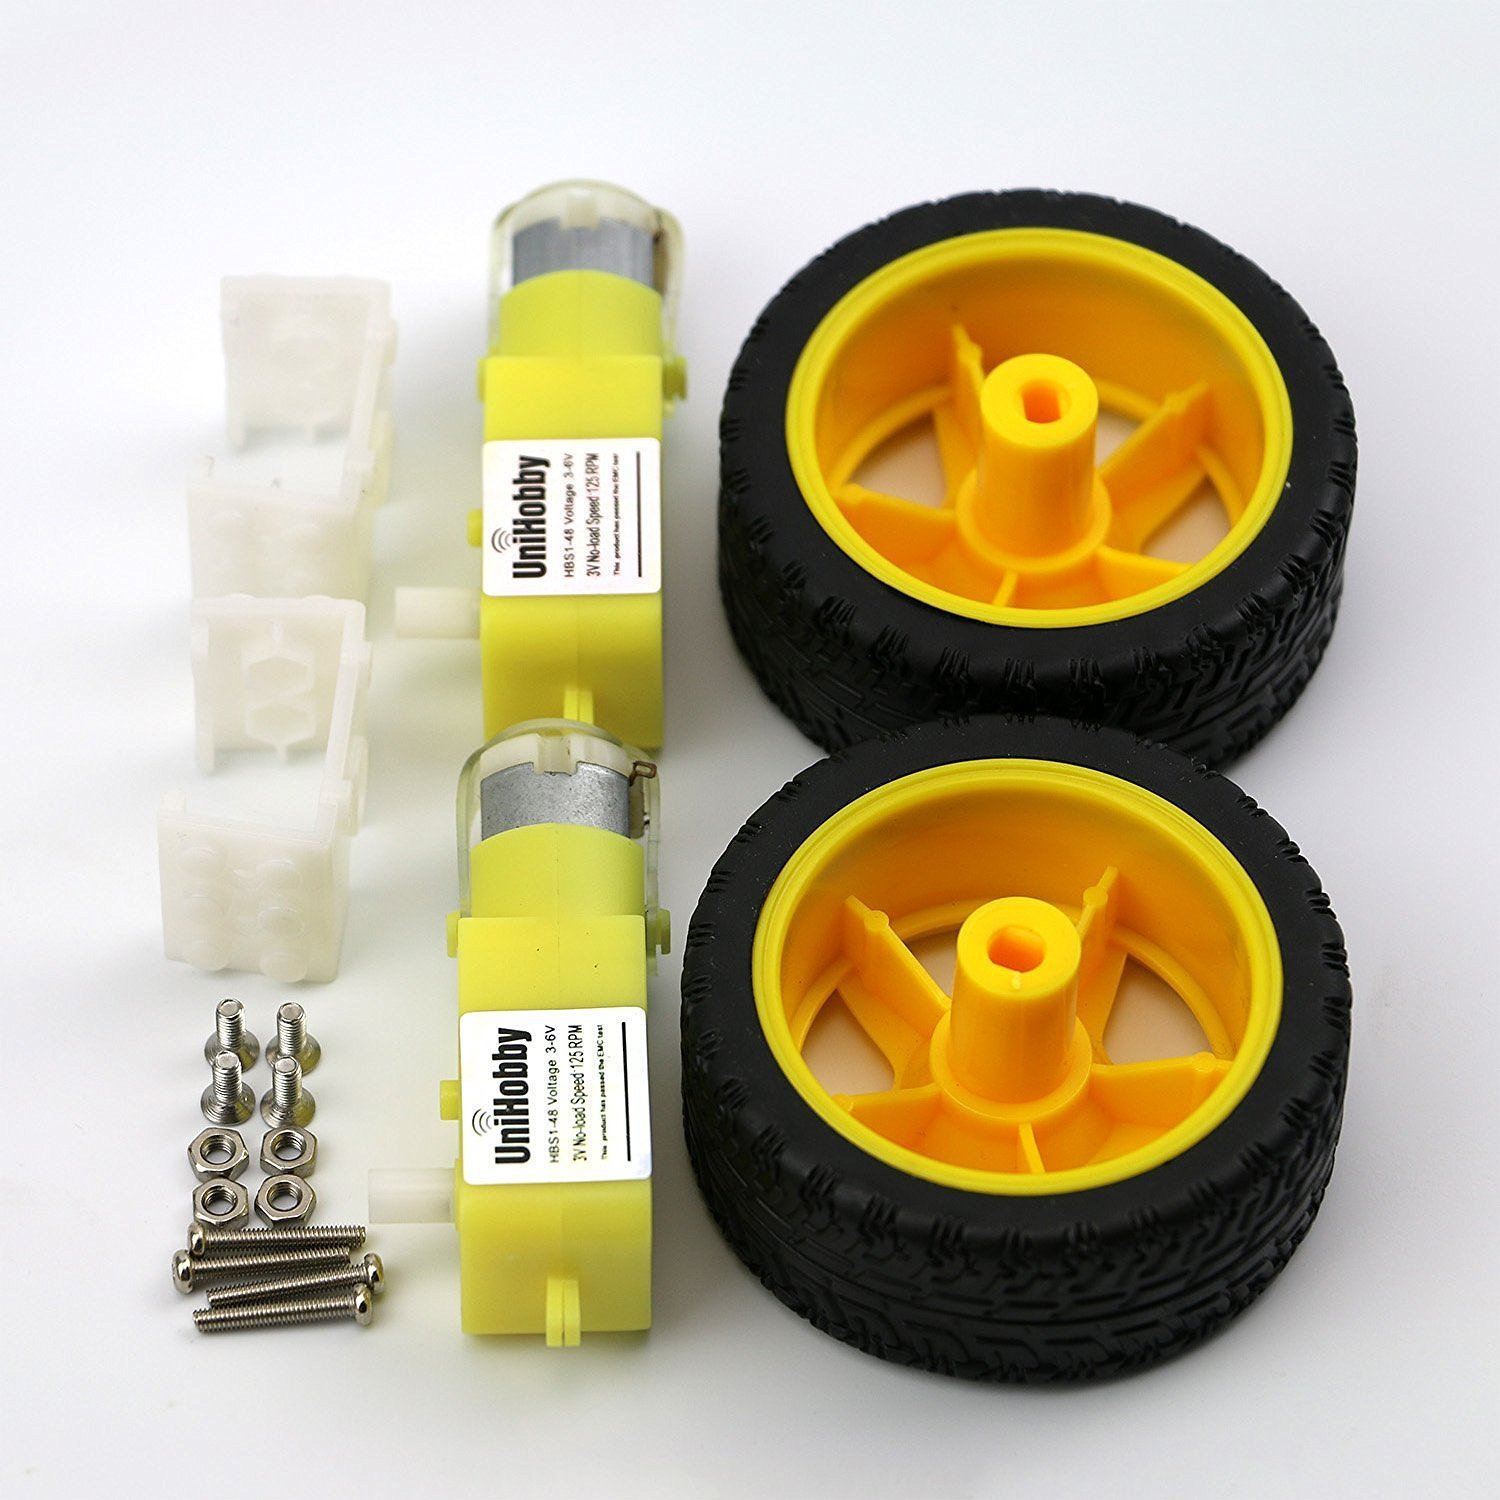 Cheap Dc 1 Wheels find Dc 1 Wheels deals on line at Alibaba